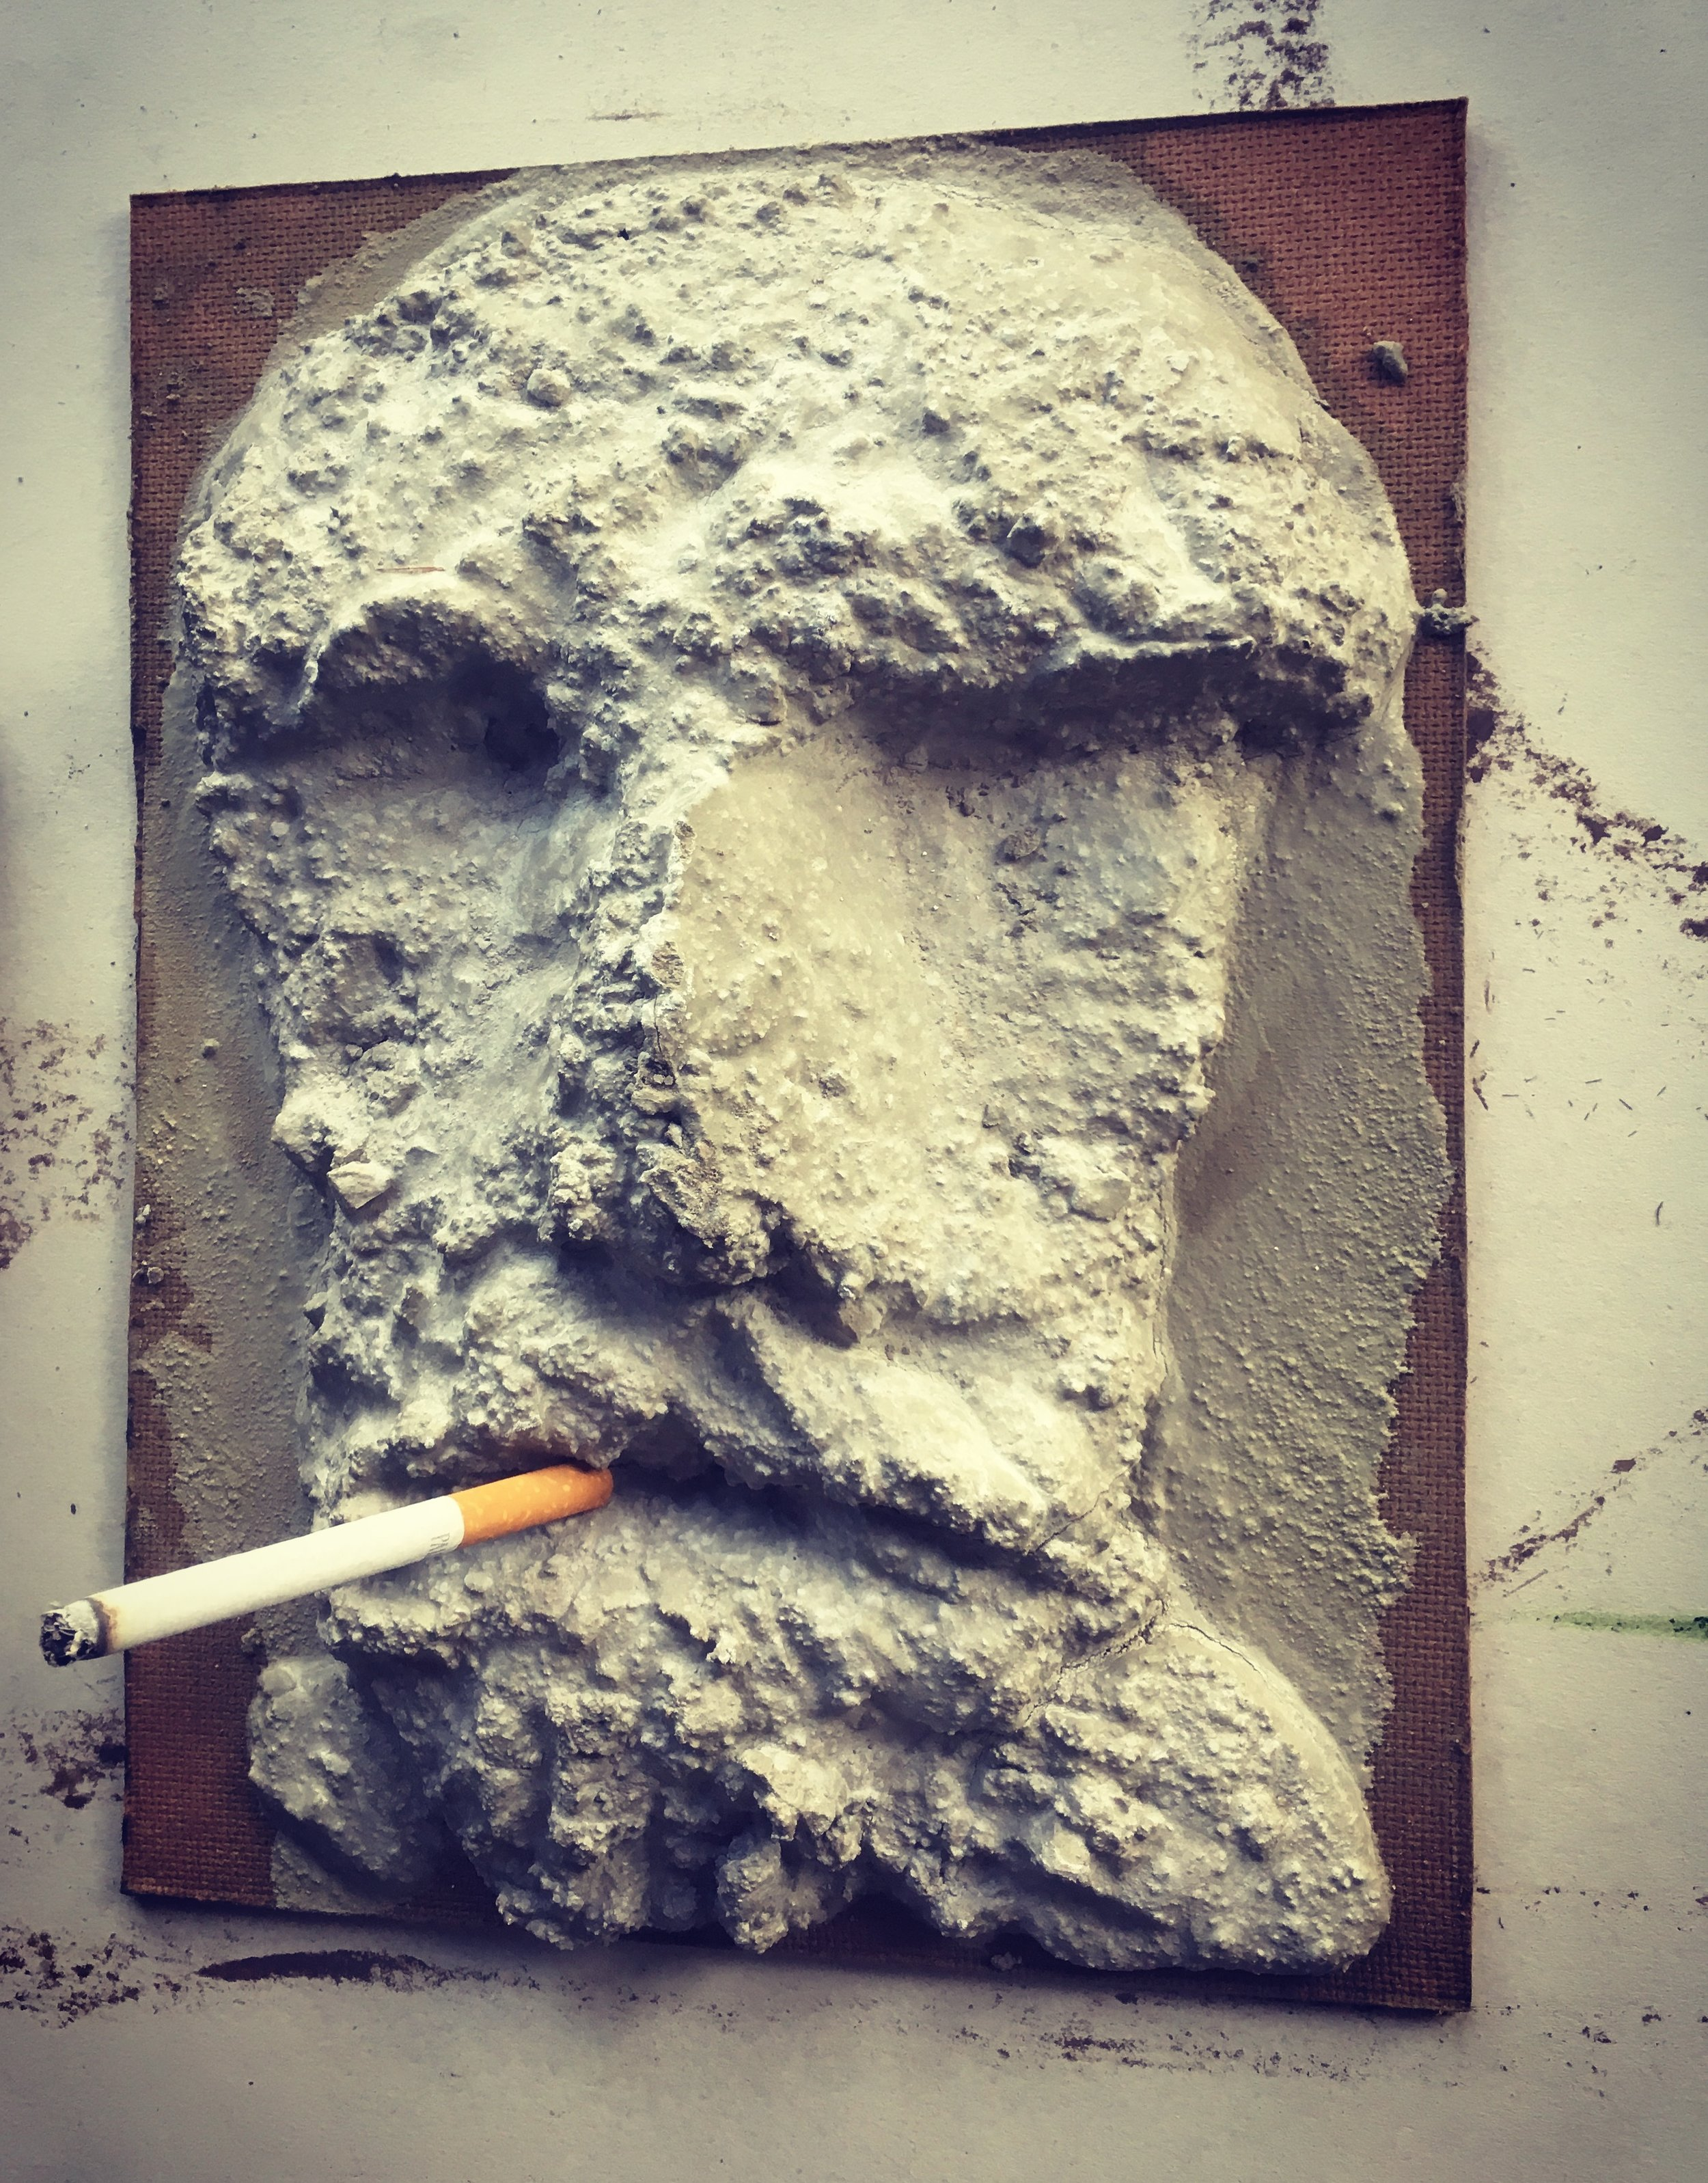 Aggregate (with lit cigarette)